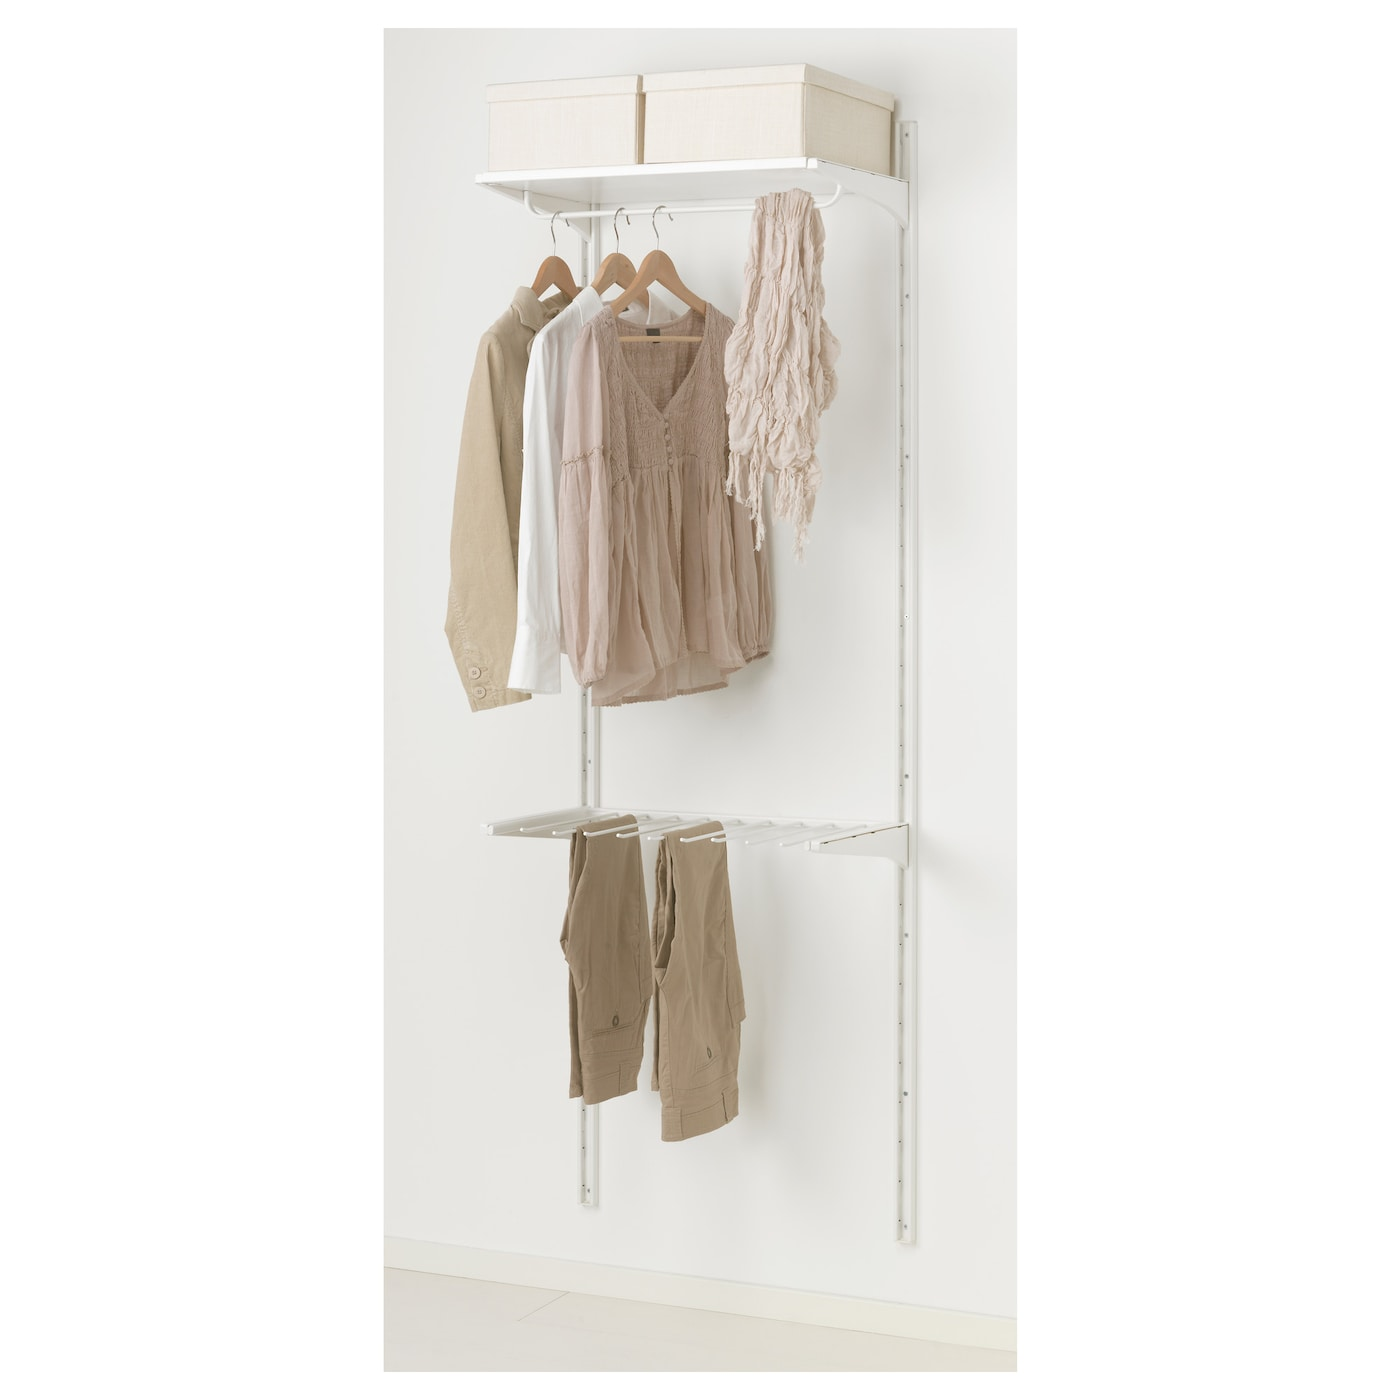 IKEA ALGOT wall upright/shelves/trouser hanger